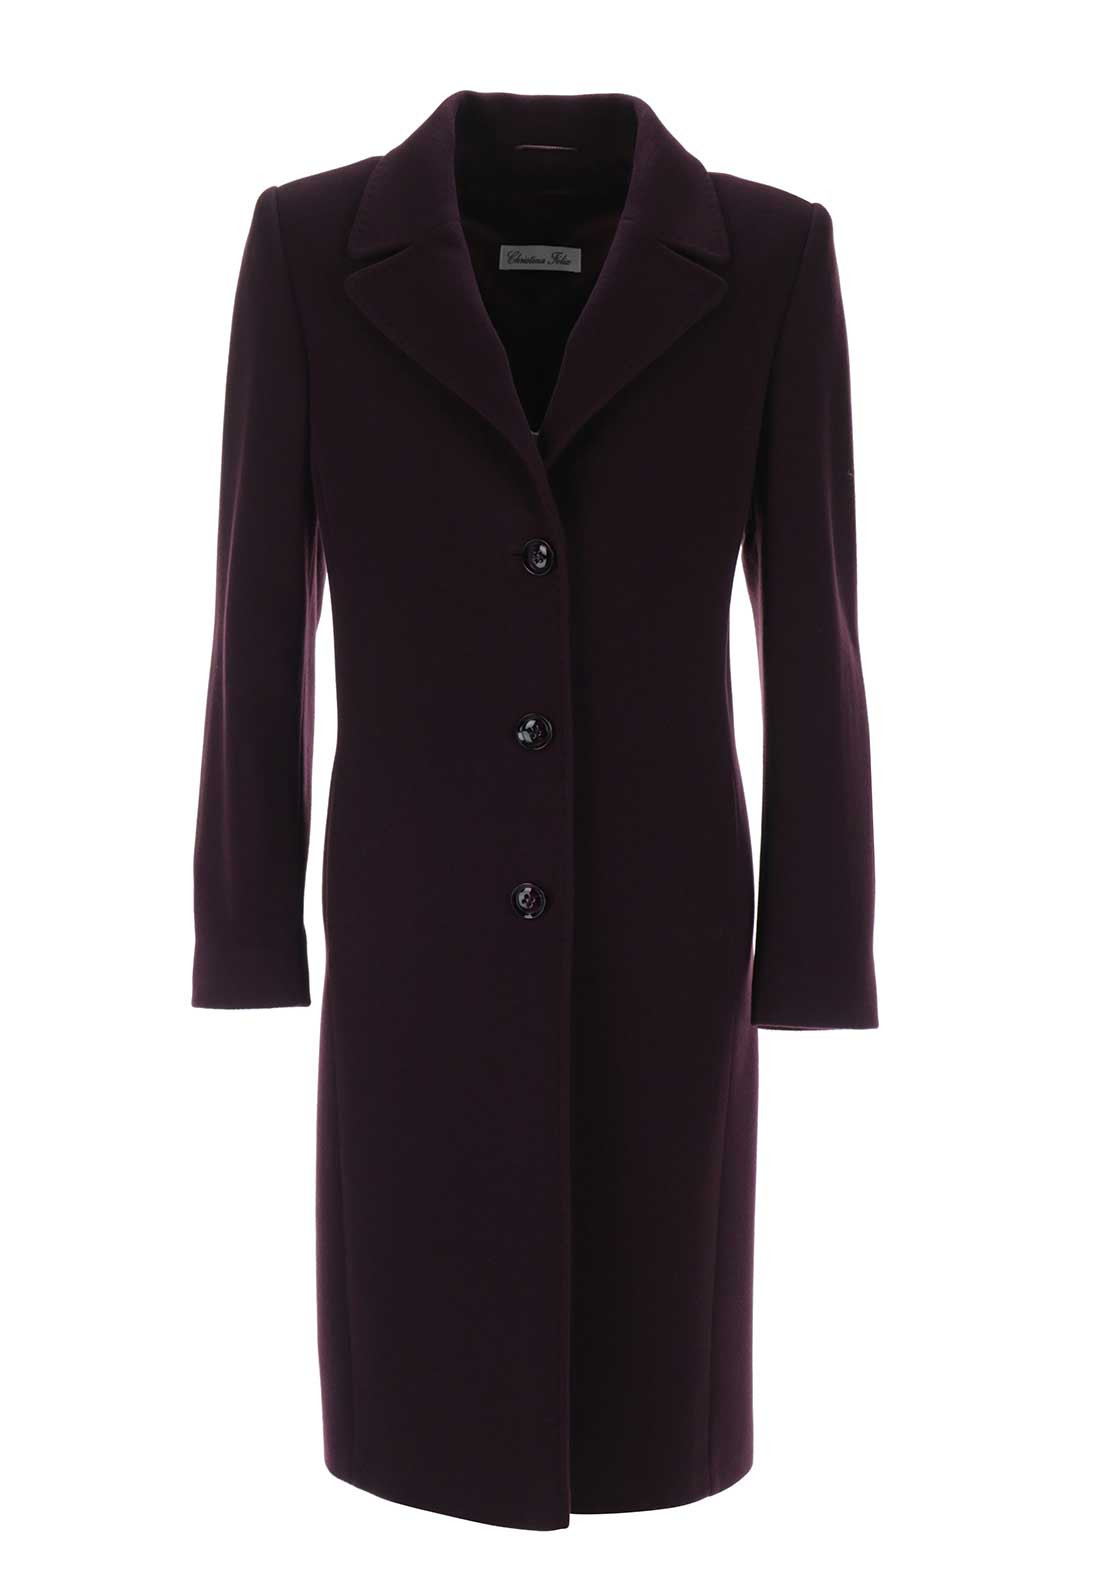 Christina Felix Wool & Cashmere Coat, Plum